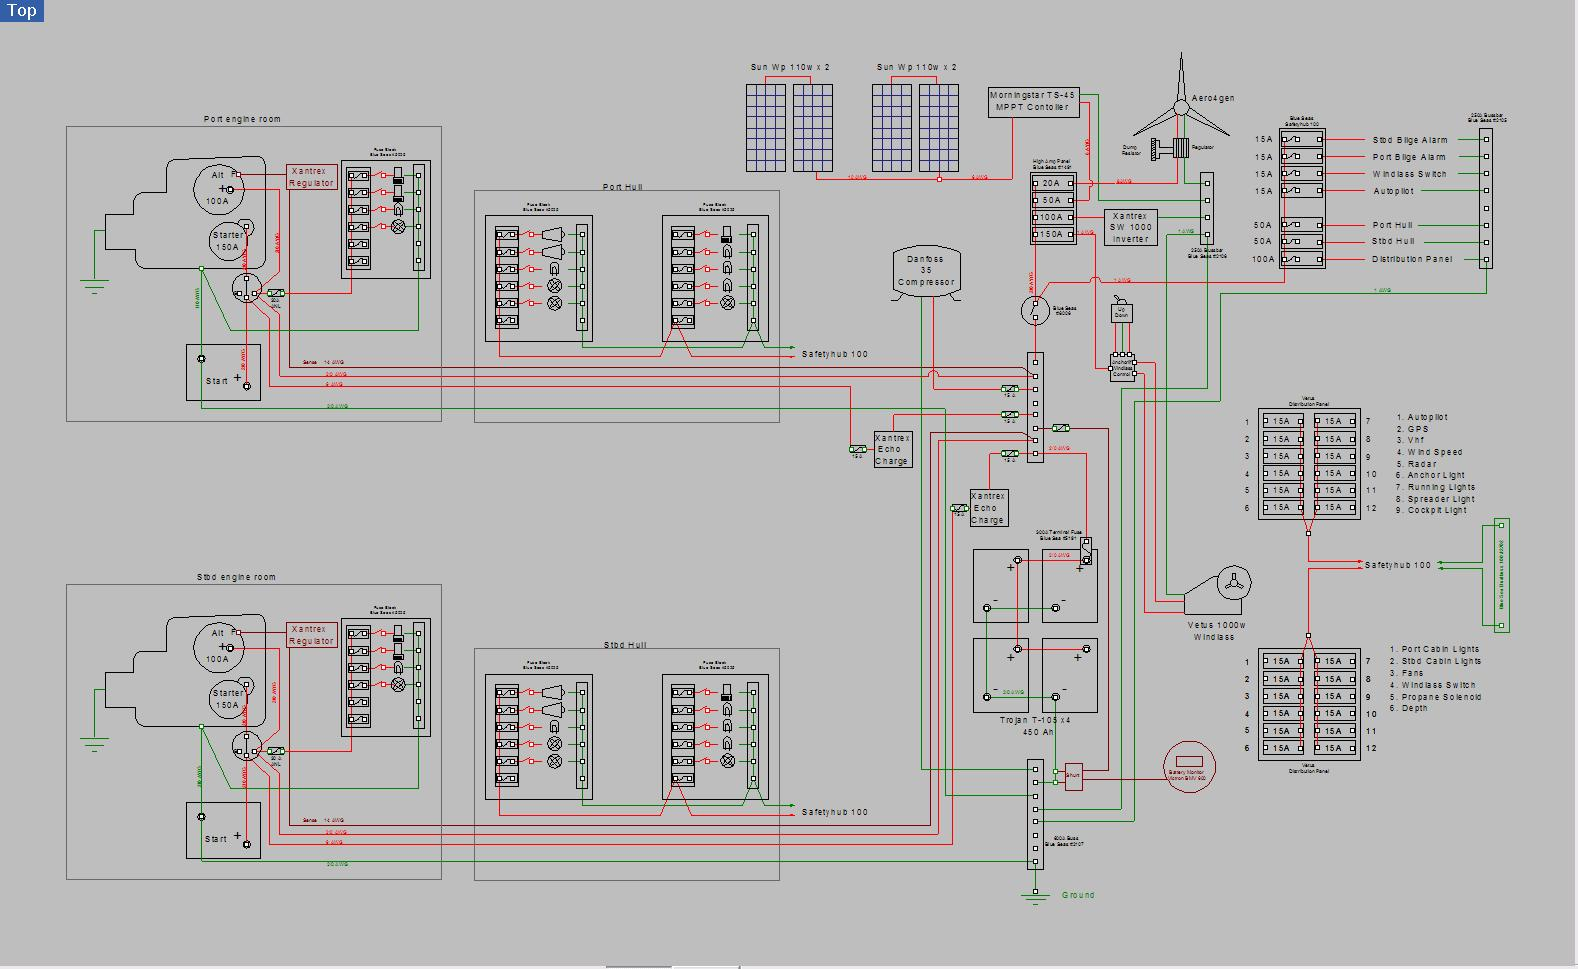 Click image for larger version  Name:Circuit Diagram 10-21-10.JPG Views:148 Size:174.8 KB ID:20392